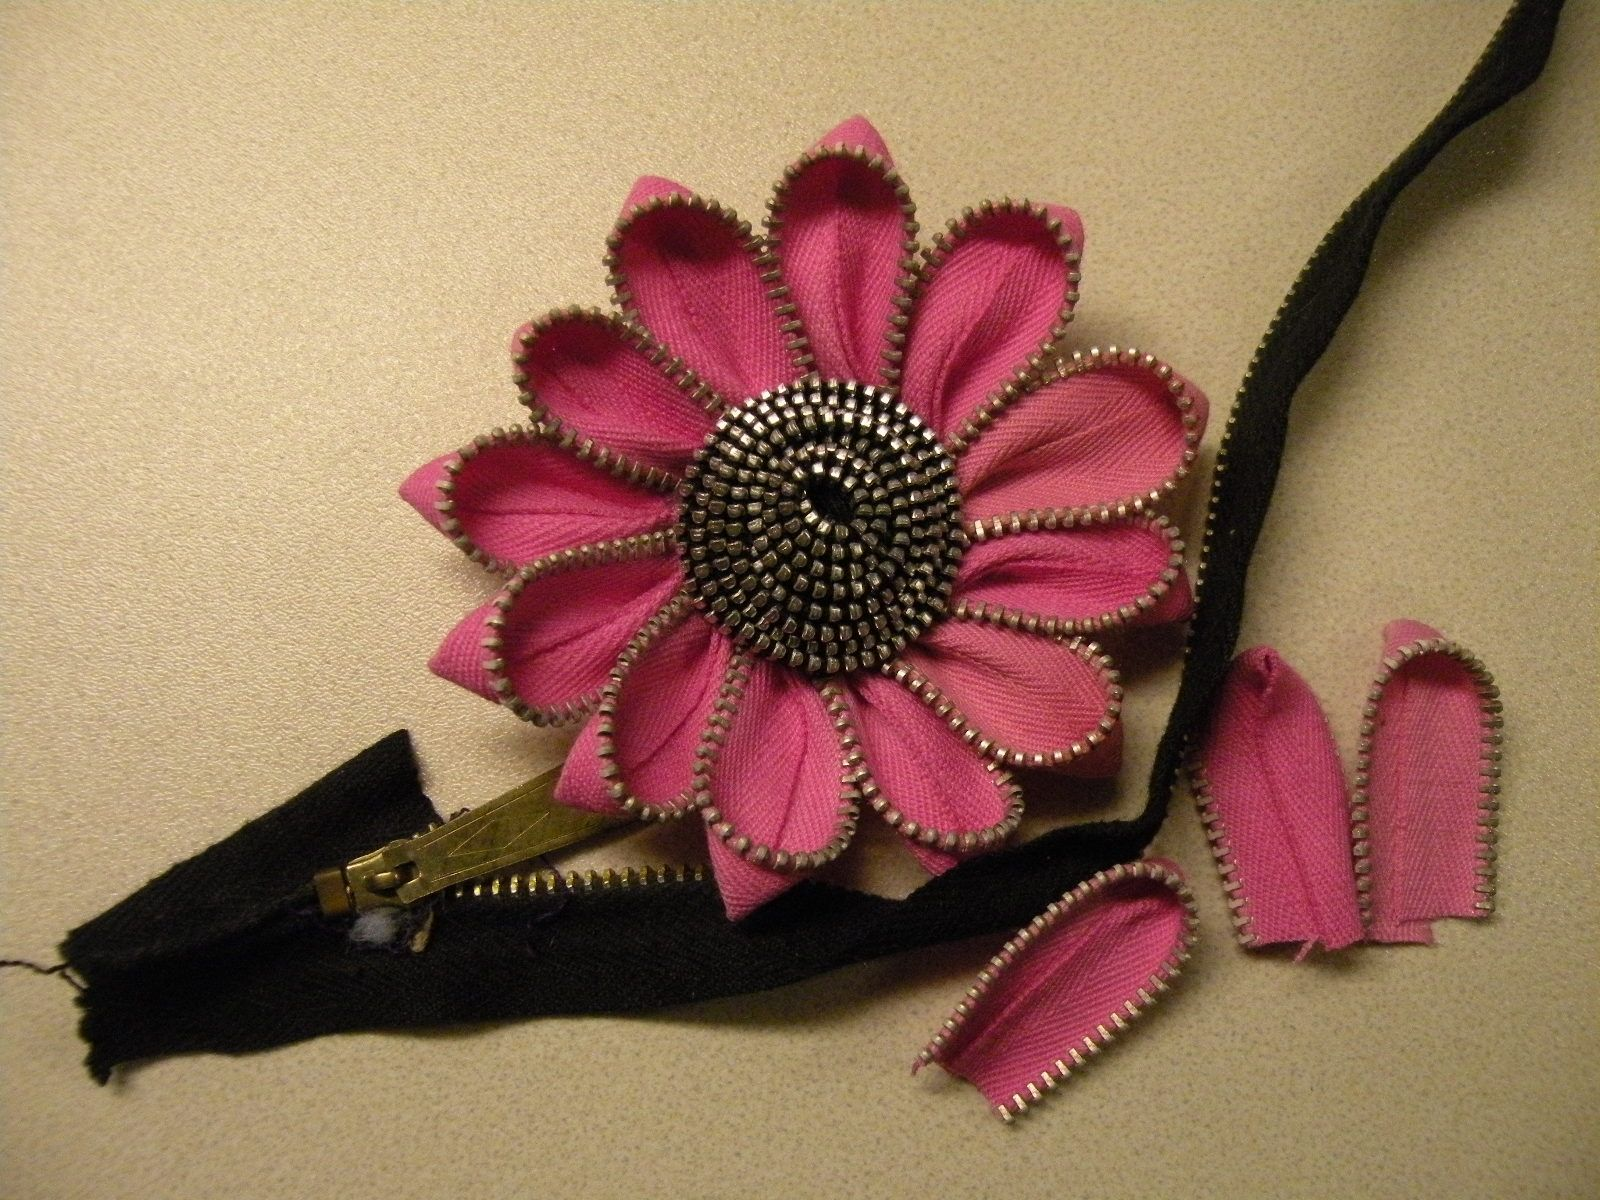 Small flowers for crafts - Find This Pin And More On Crafts Zippers